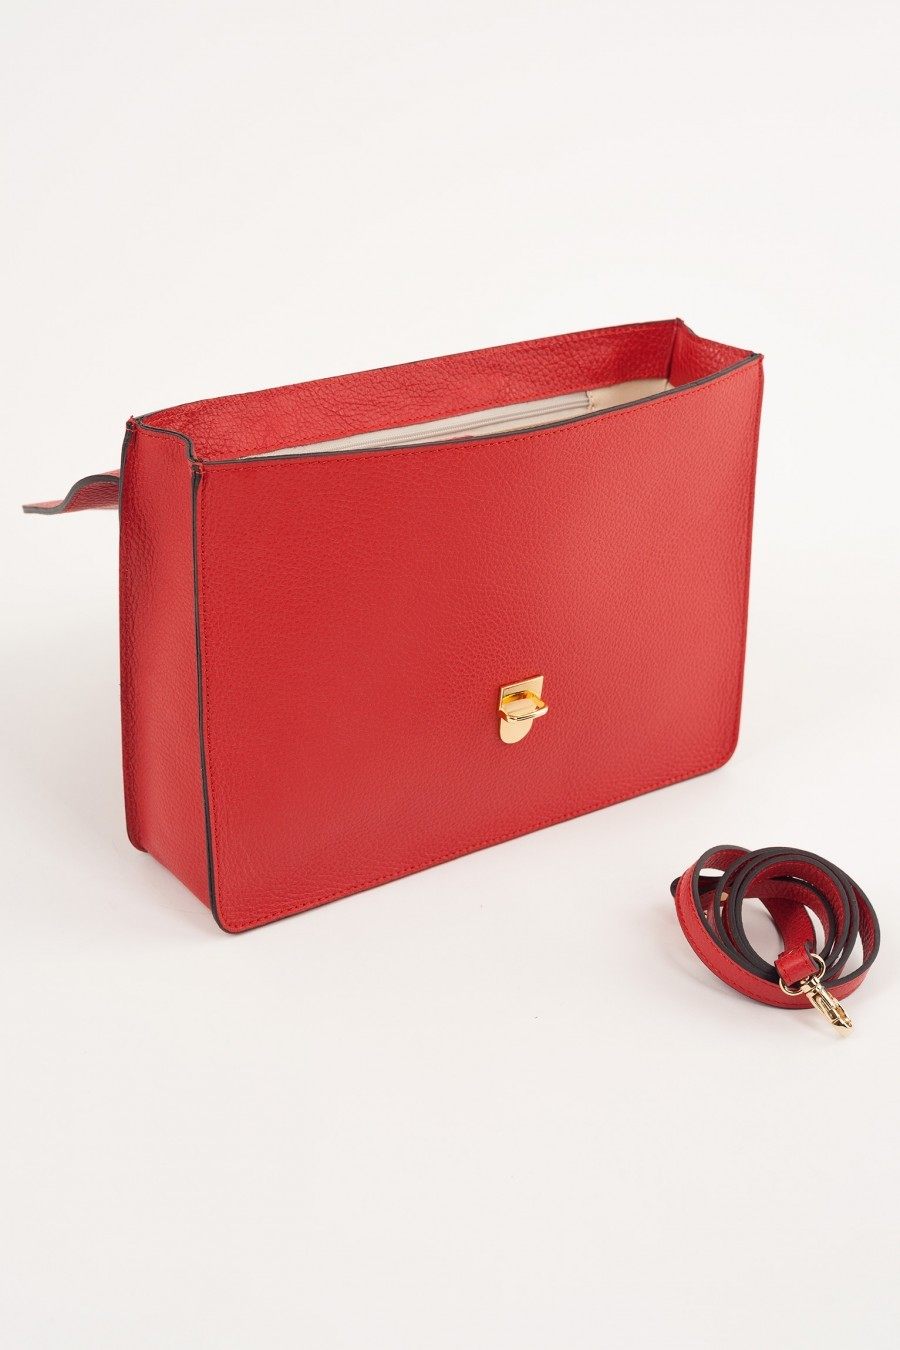 red retrò bag